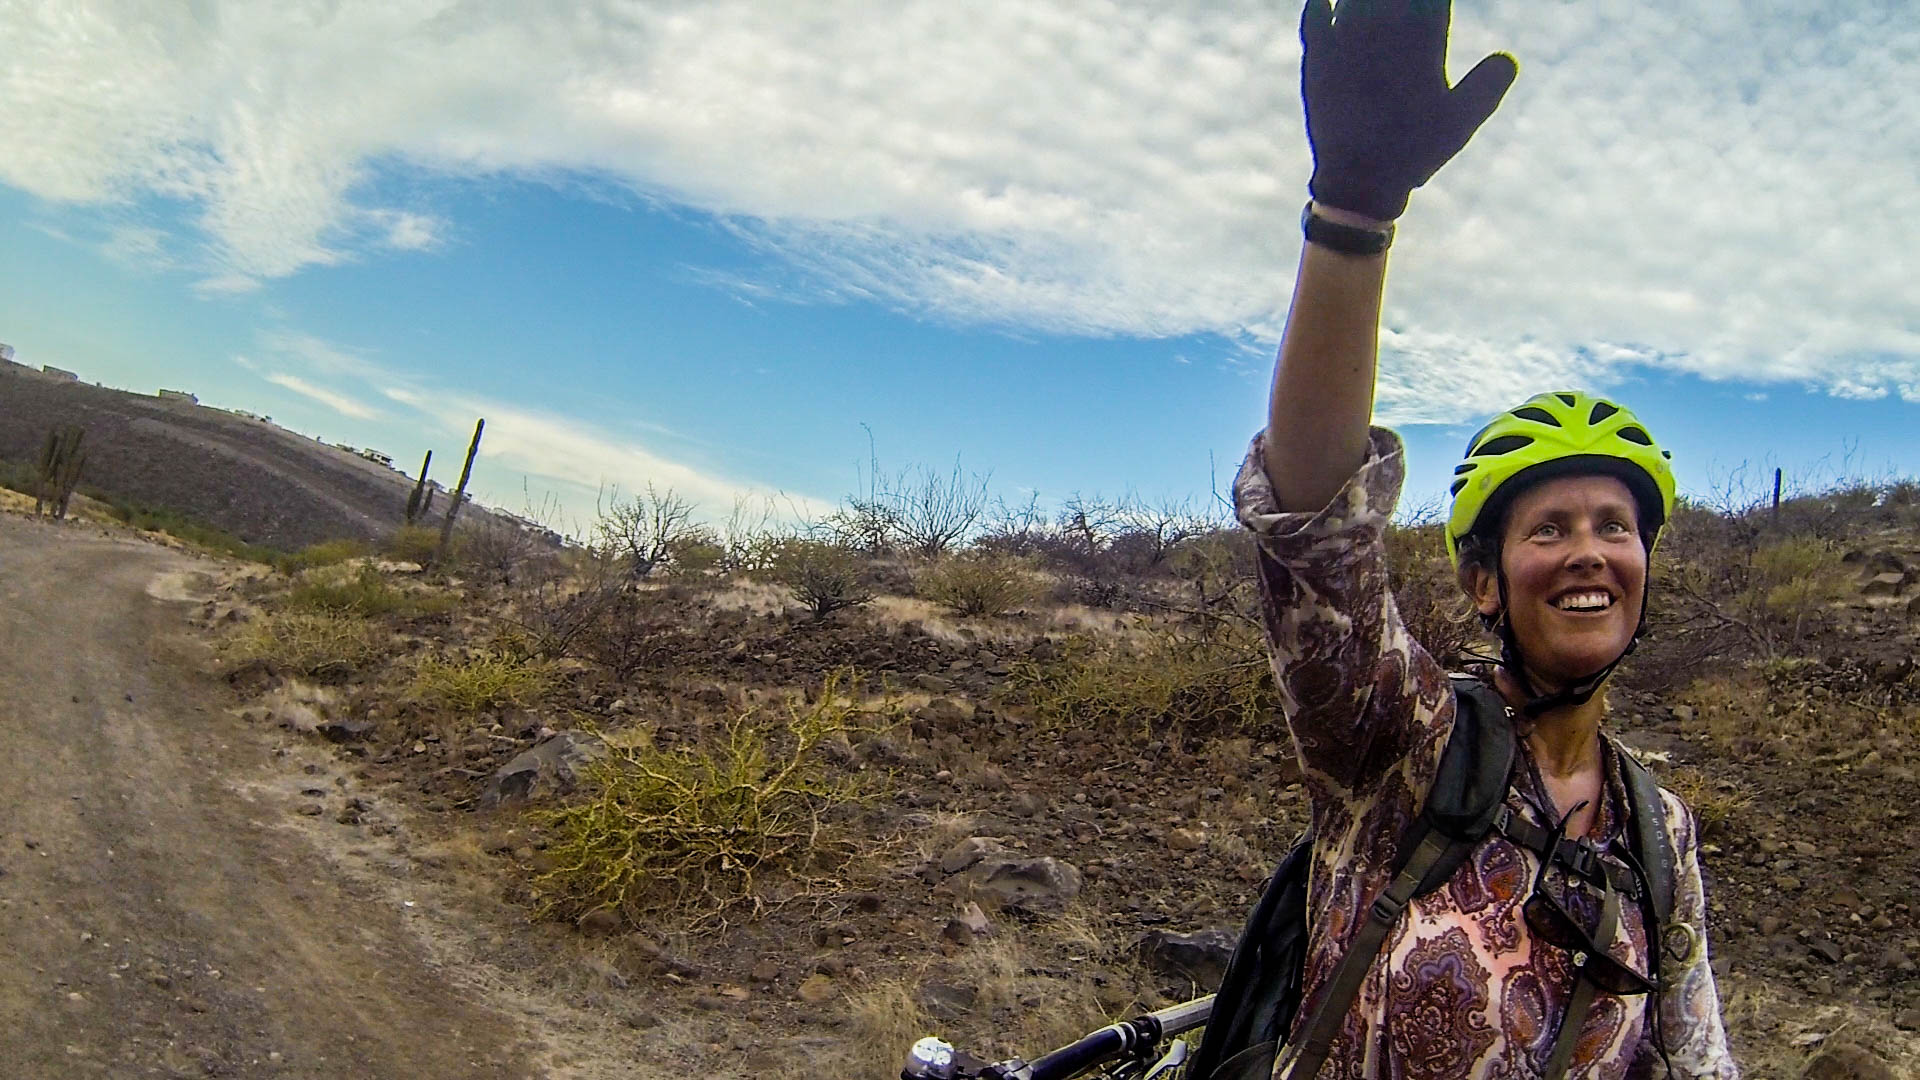 Always good to survive a ride in the desert. La Paz has some REALLY fun mountain biking!